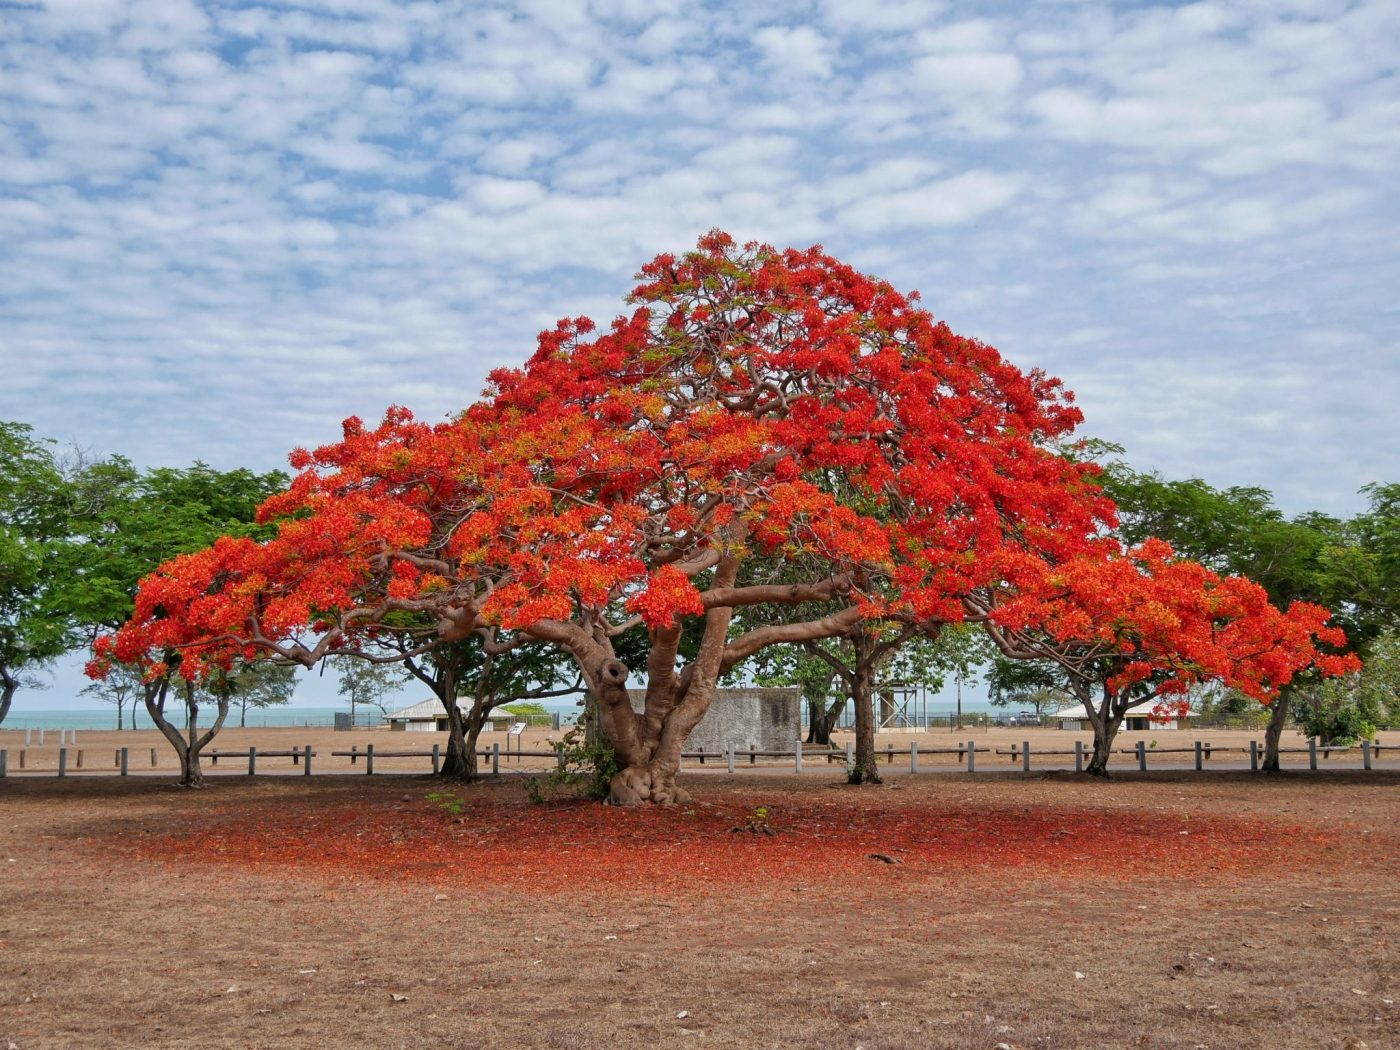 Beautiful trees with red blossom